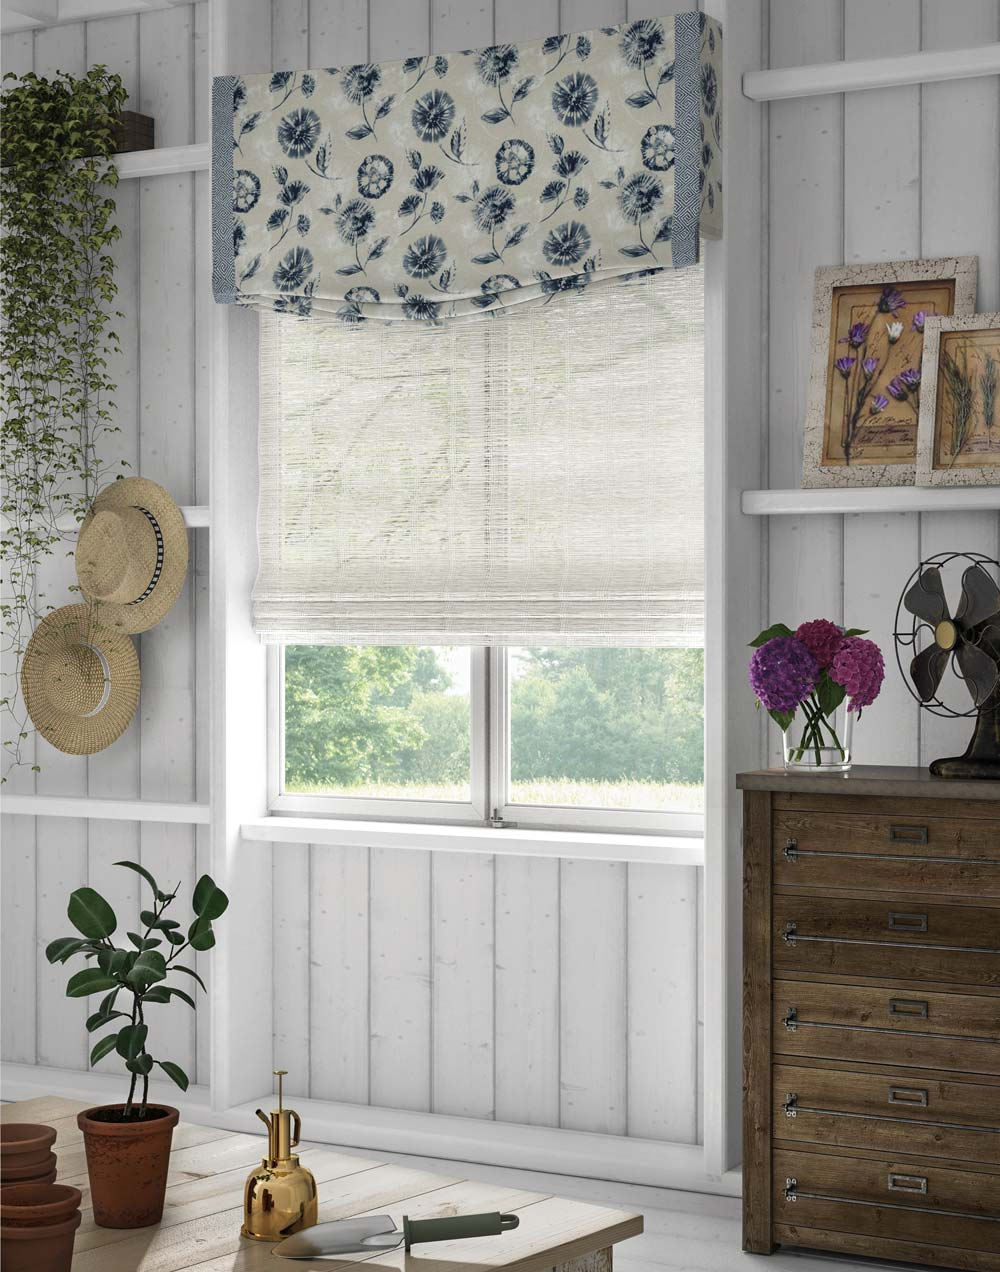 Interior Masterpieces® Custom Fabric Wrapped Cornice with white and blue floral material hanging on top of a white Woven Wood Manh Truc® Hobbled Roman Shade